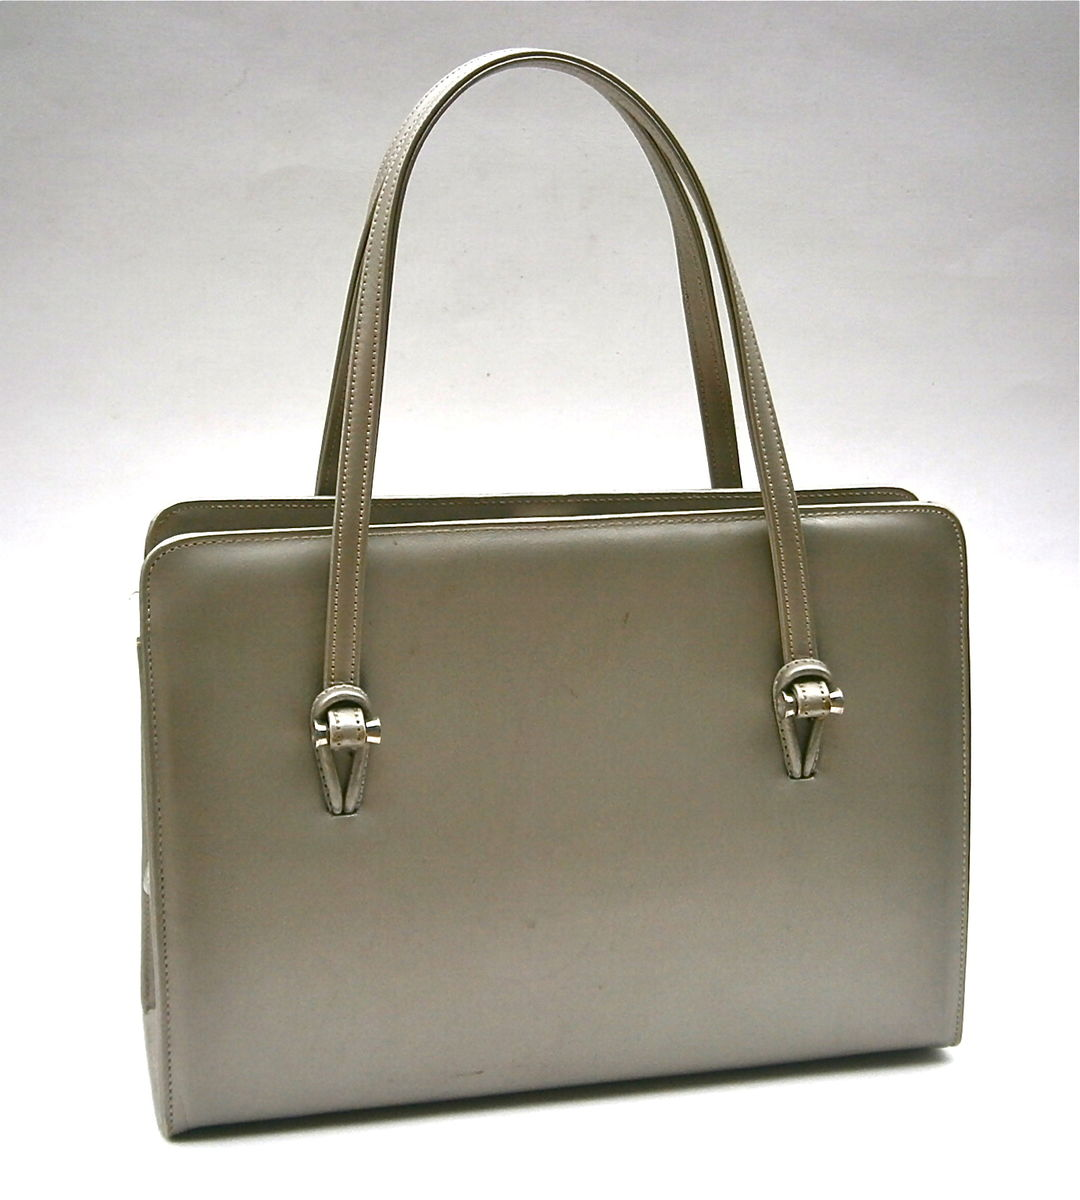 Vintage Silver Gray Handbag Mid Century Andrew Geller Leather Purse Structured Hard Case Compartment Mirror Bag Top Handle Minimalist Modern - product images  of